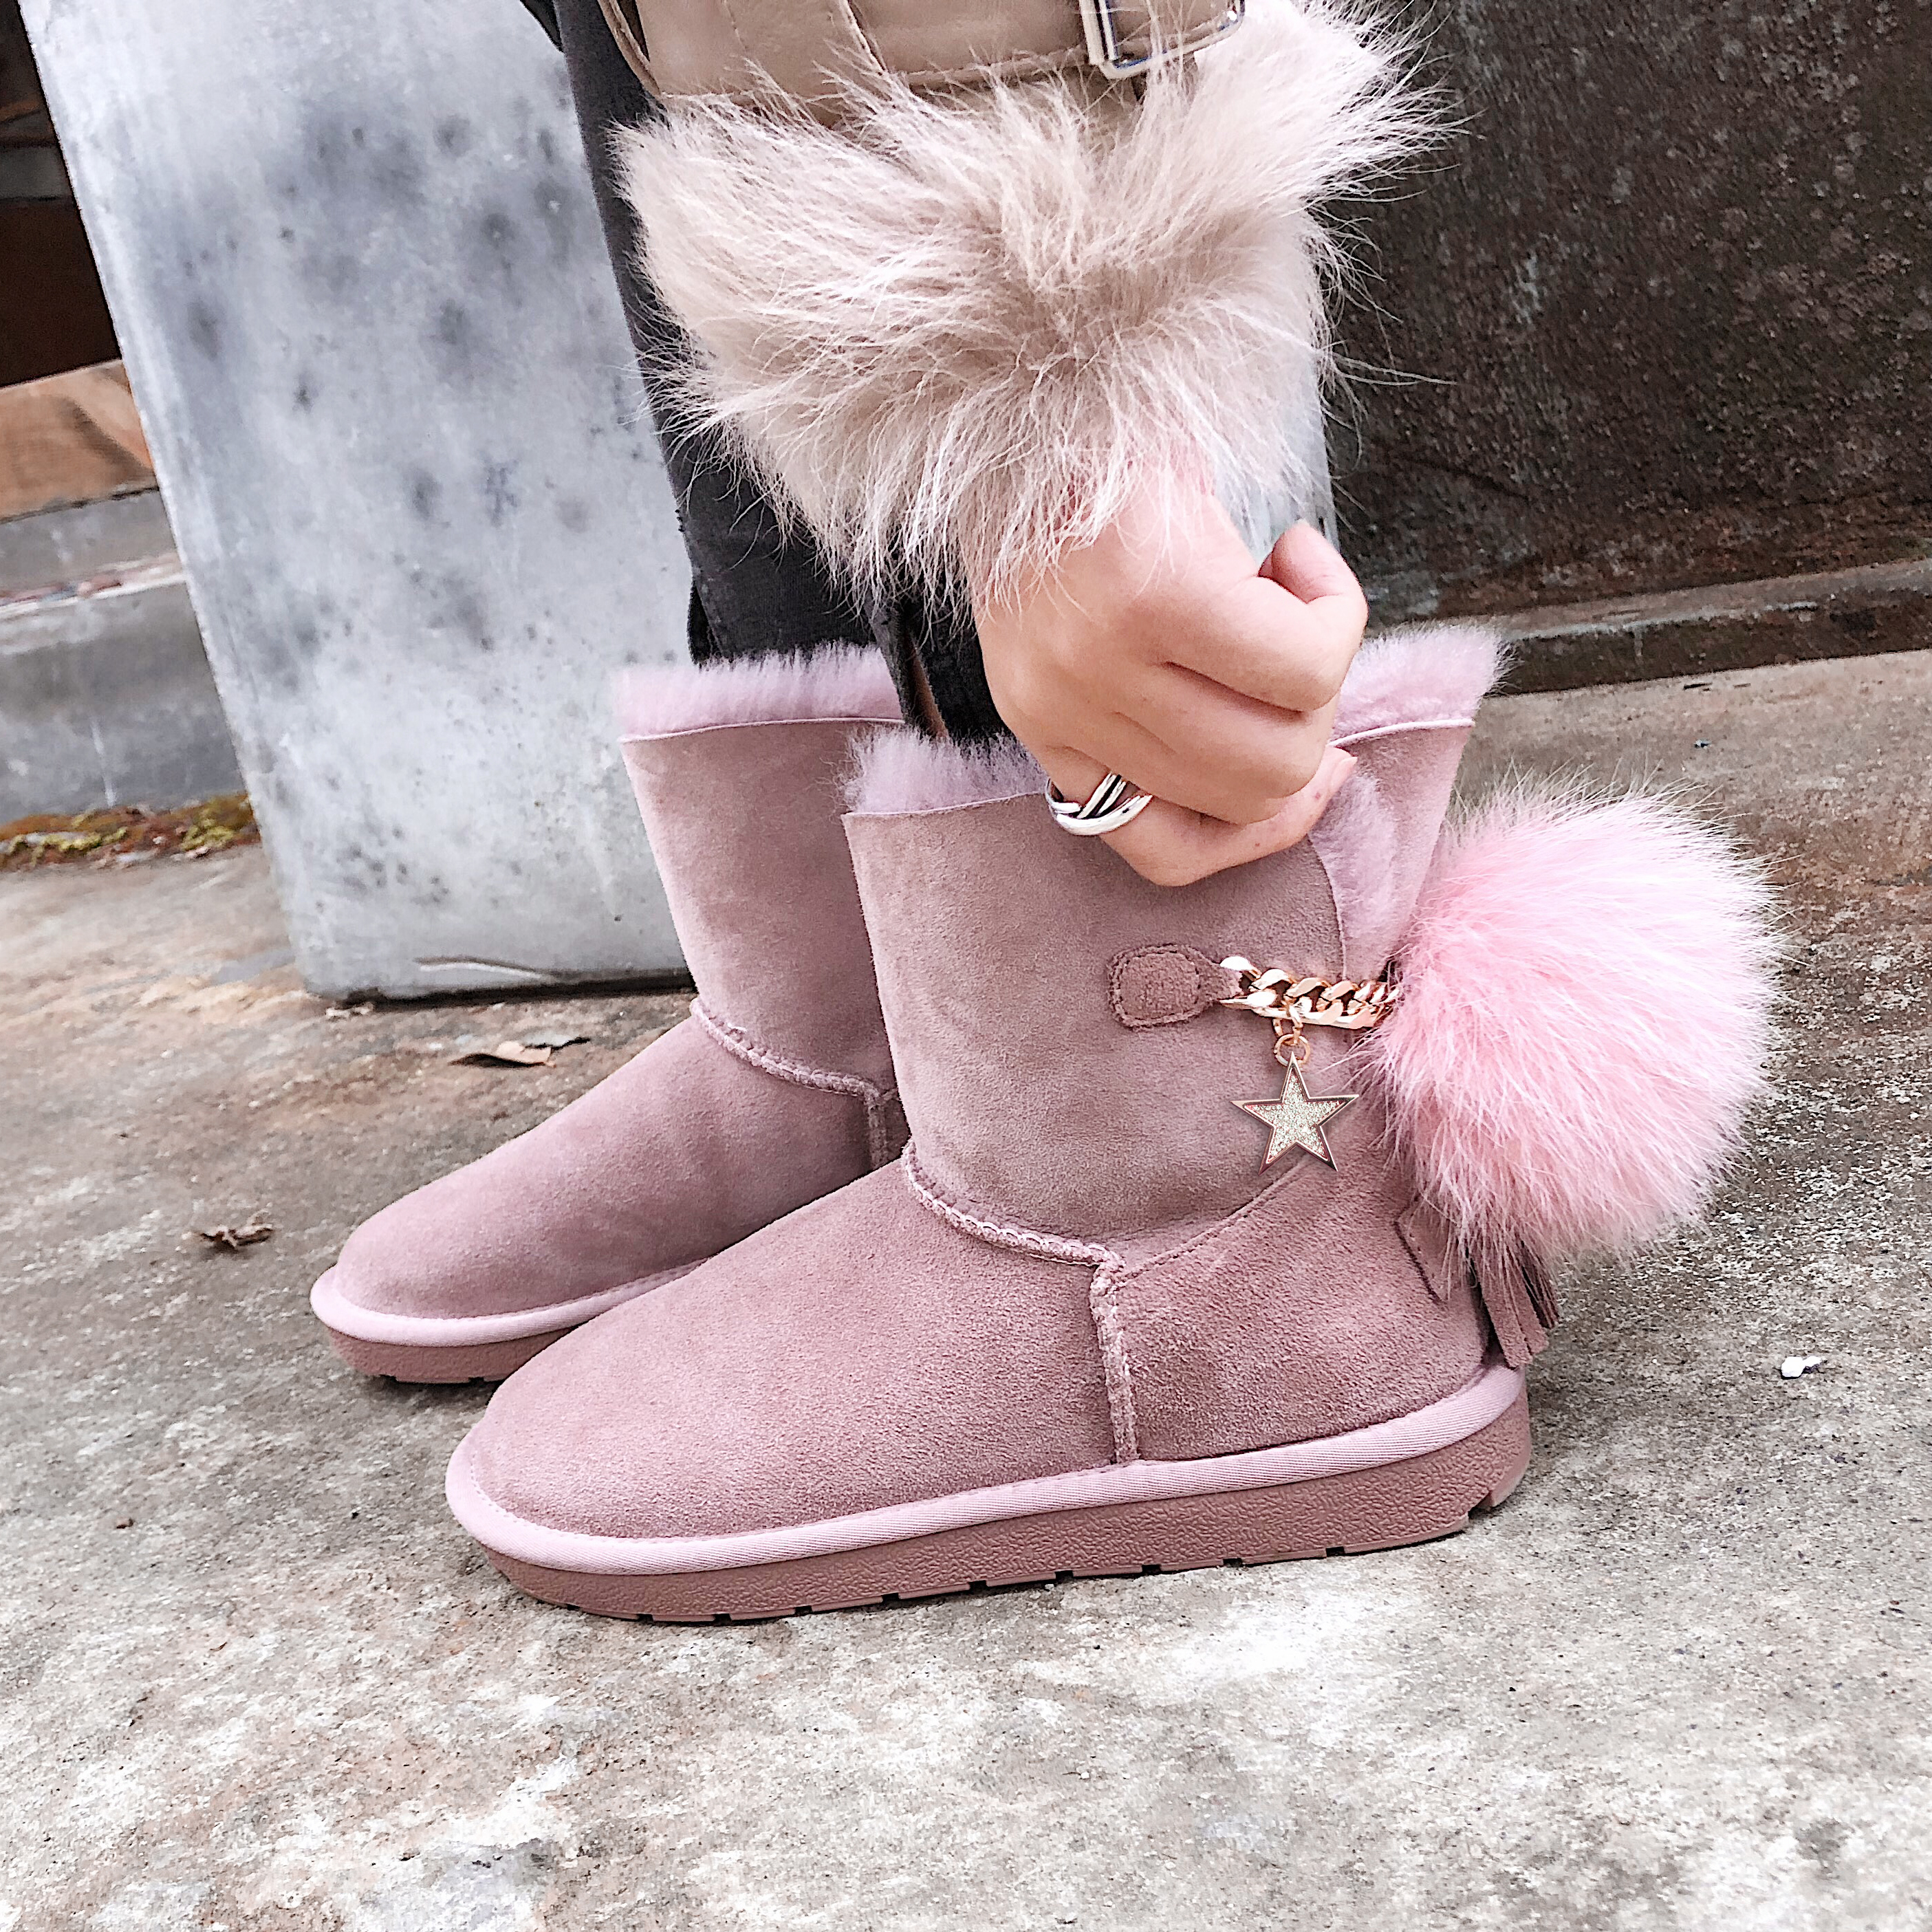 Us 61 Arden Furtado 2018 Autumn Winter Platform Snow Boots